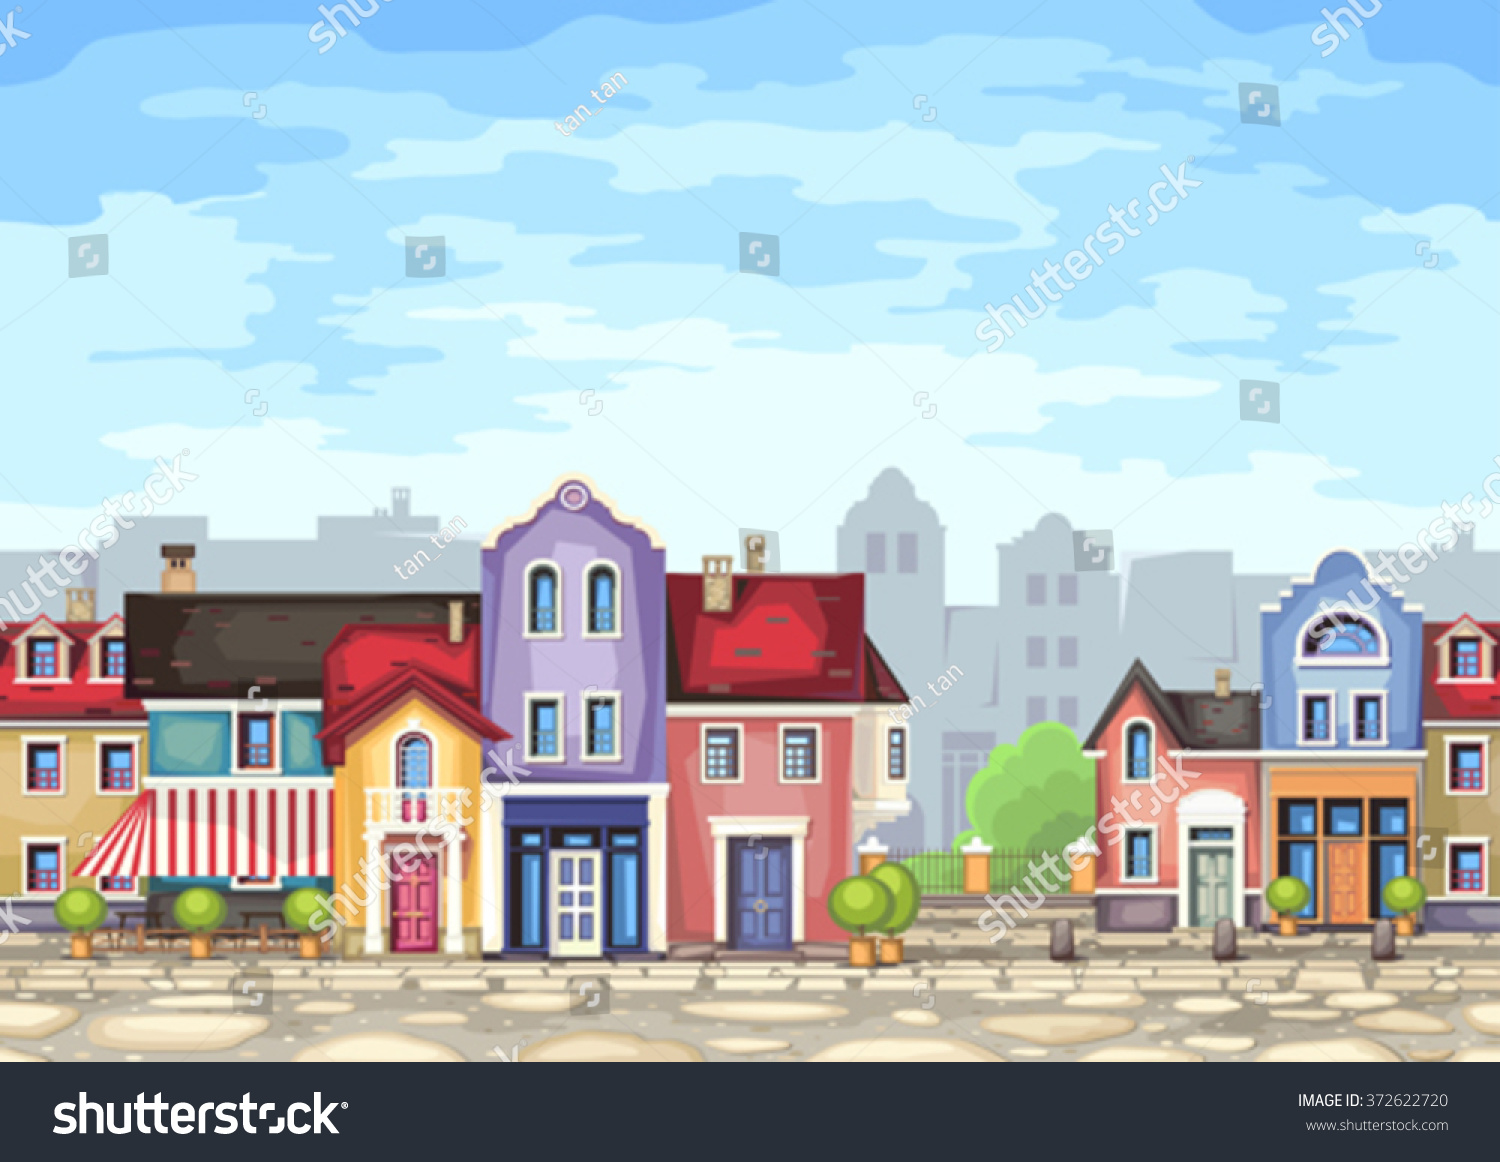 Town Landscape Vector Illustration: Small Town Street Coffee Shopvector Illustration Stock